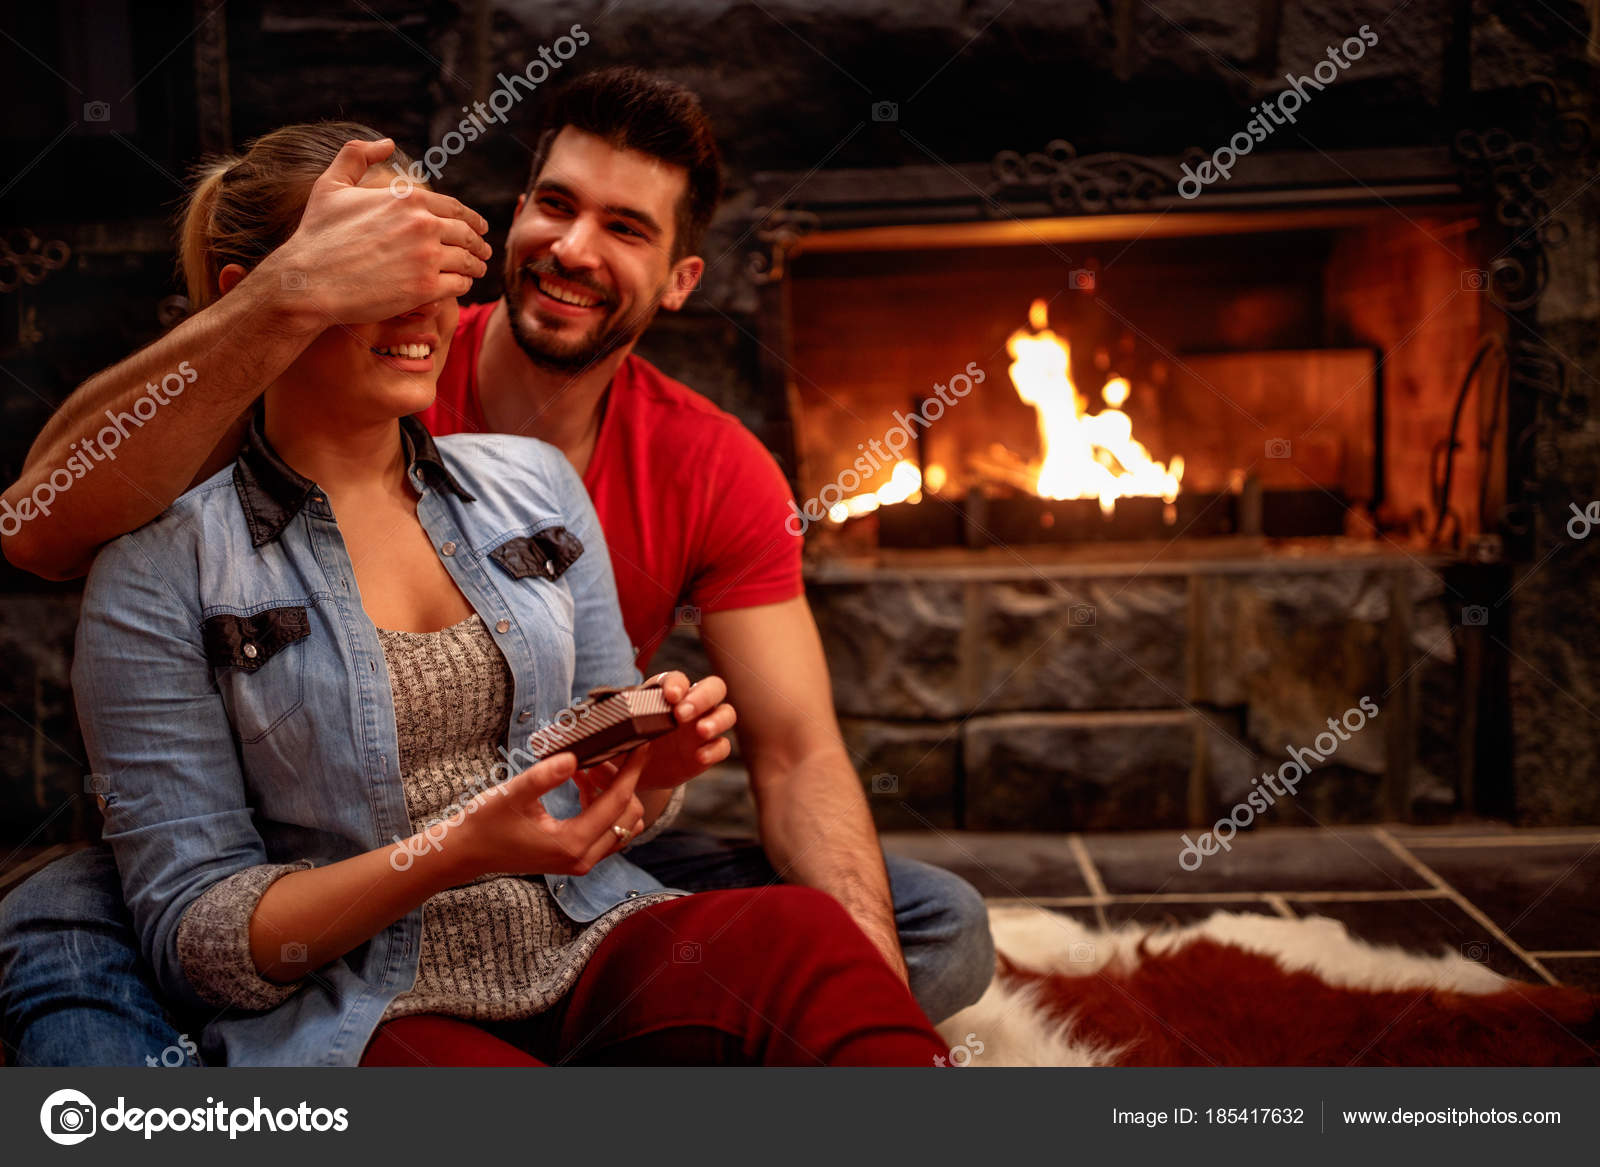 hbo interracial dating documentary